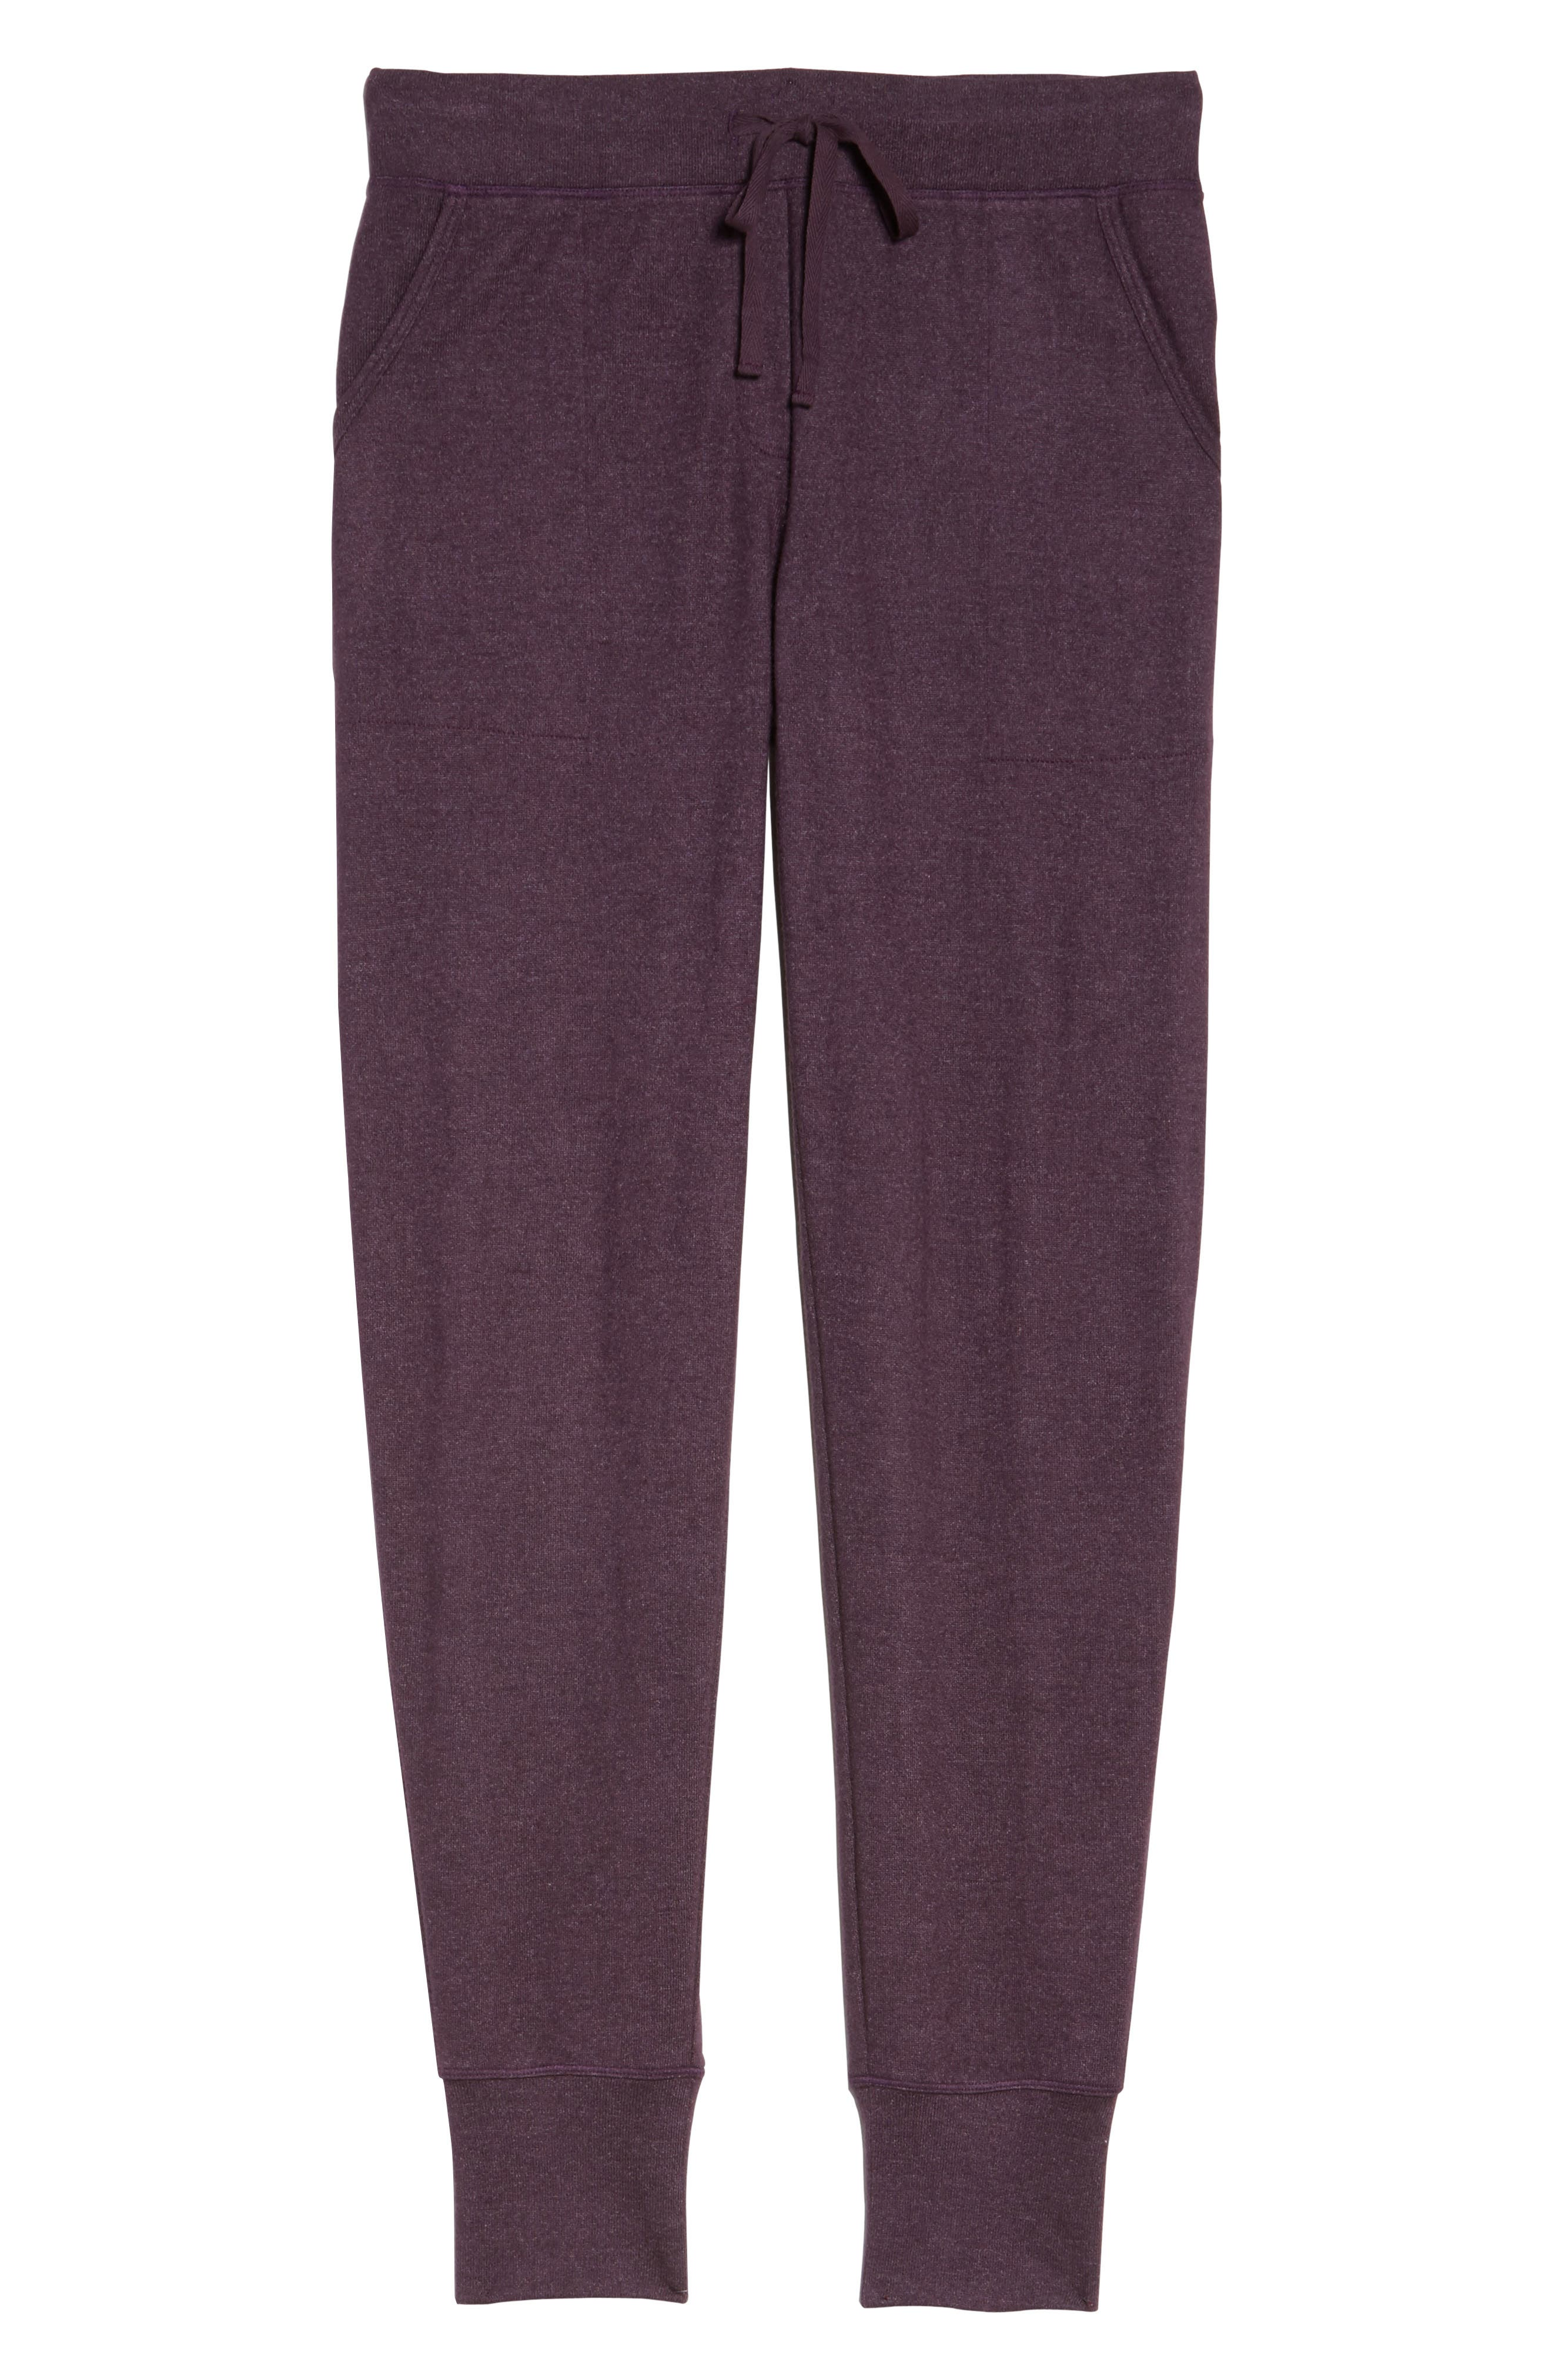 Retreat Sweater Knit Pants,                             Alternate thumbnail 18, color,